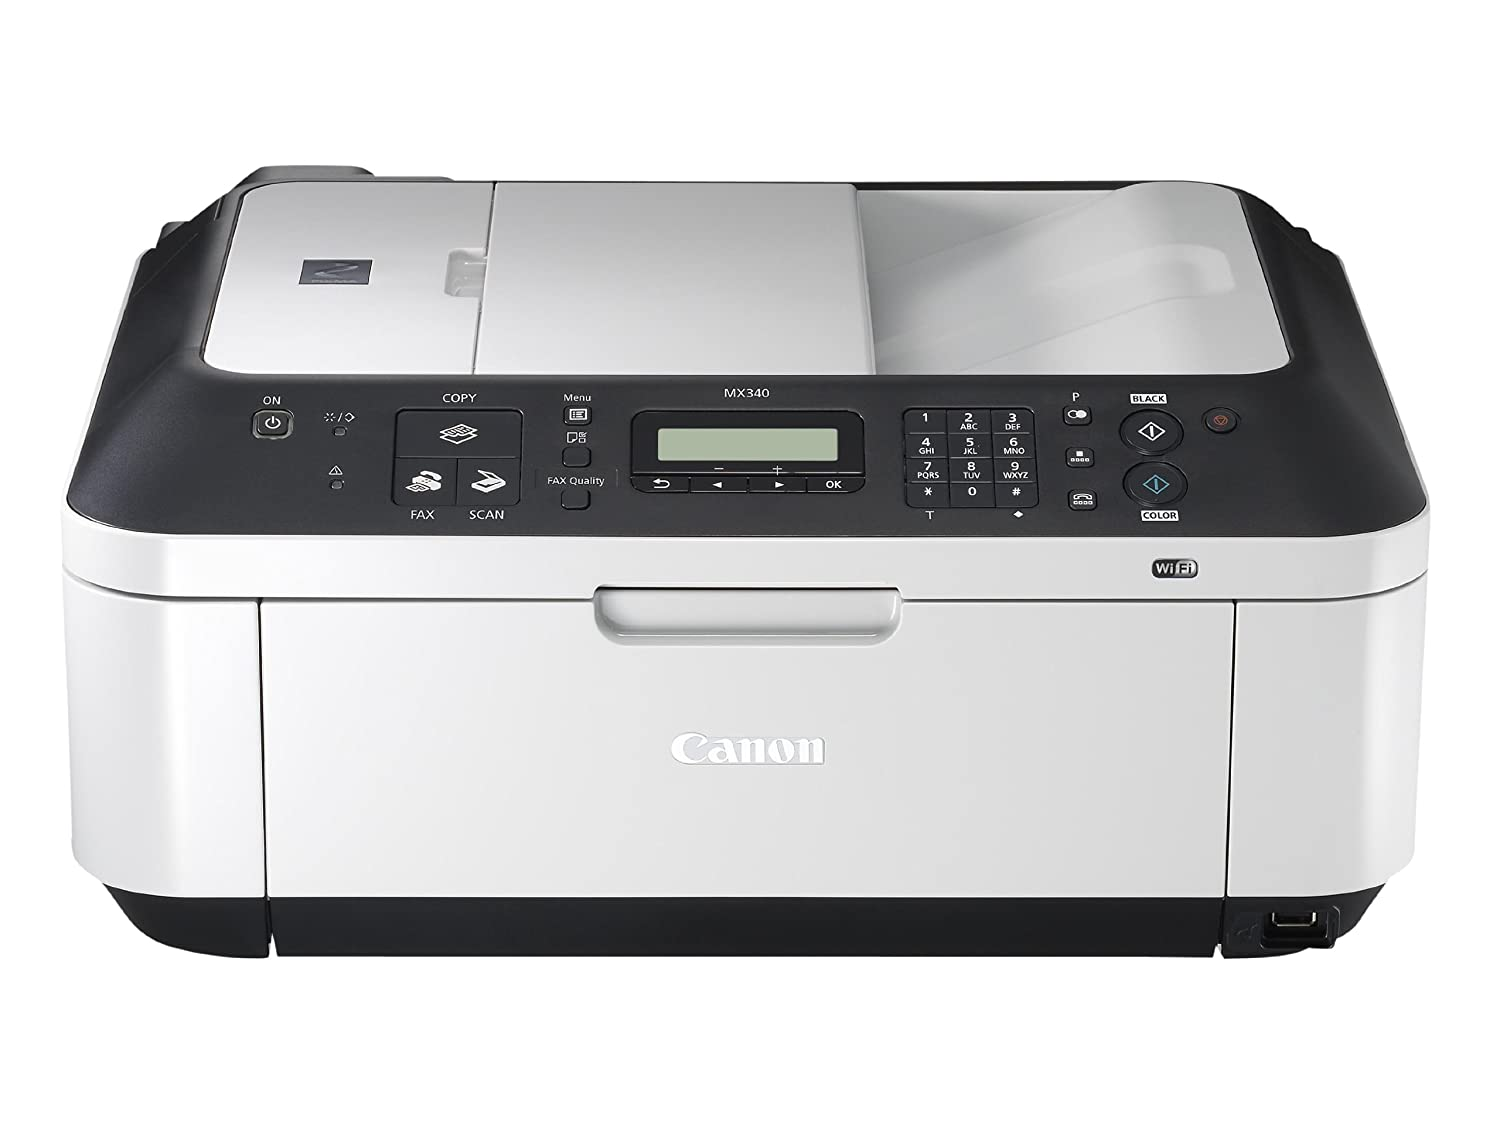 CANON PRINTERS MX340 TREIBER WINDOWS 8